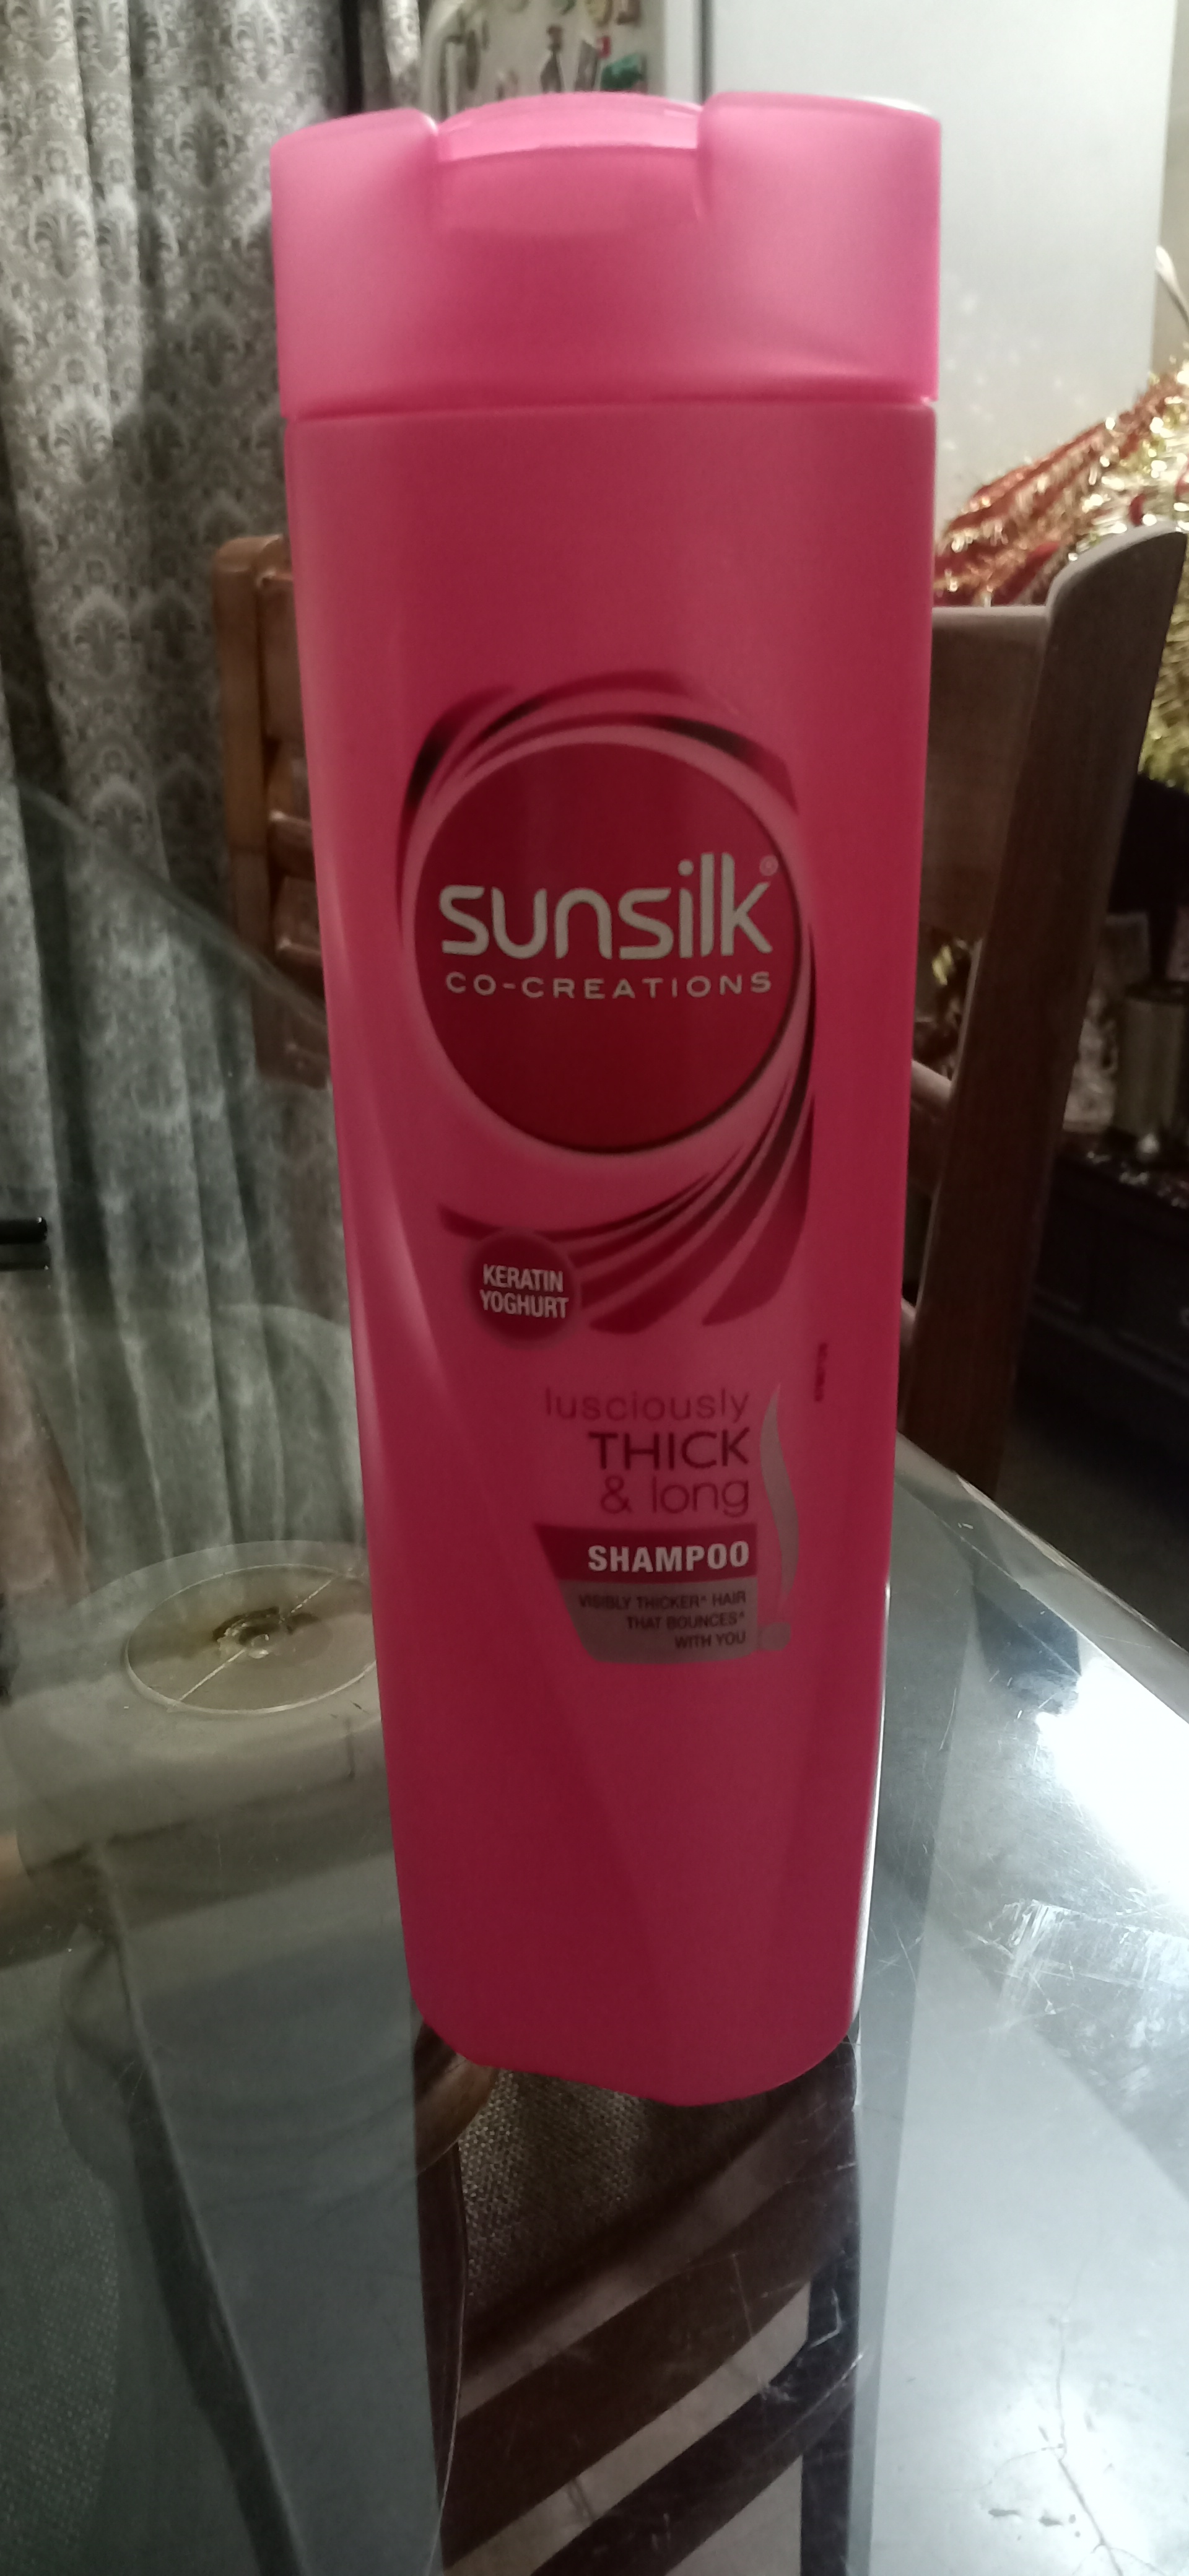 Sunsilk Lusciously Thick & Long Shampoo-Sunsilk for the win!-By vasundhara_juyal-2